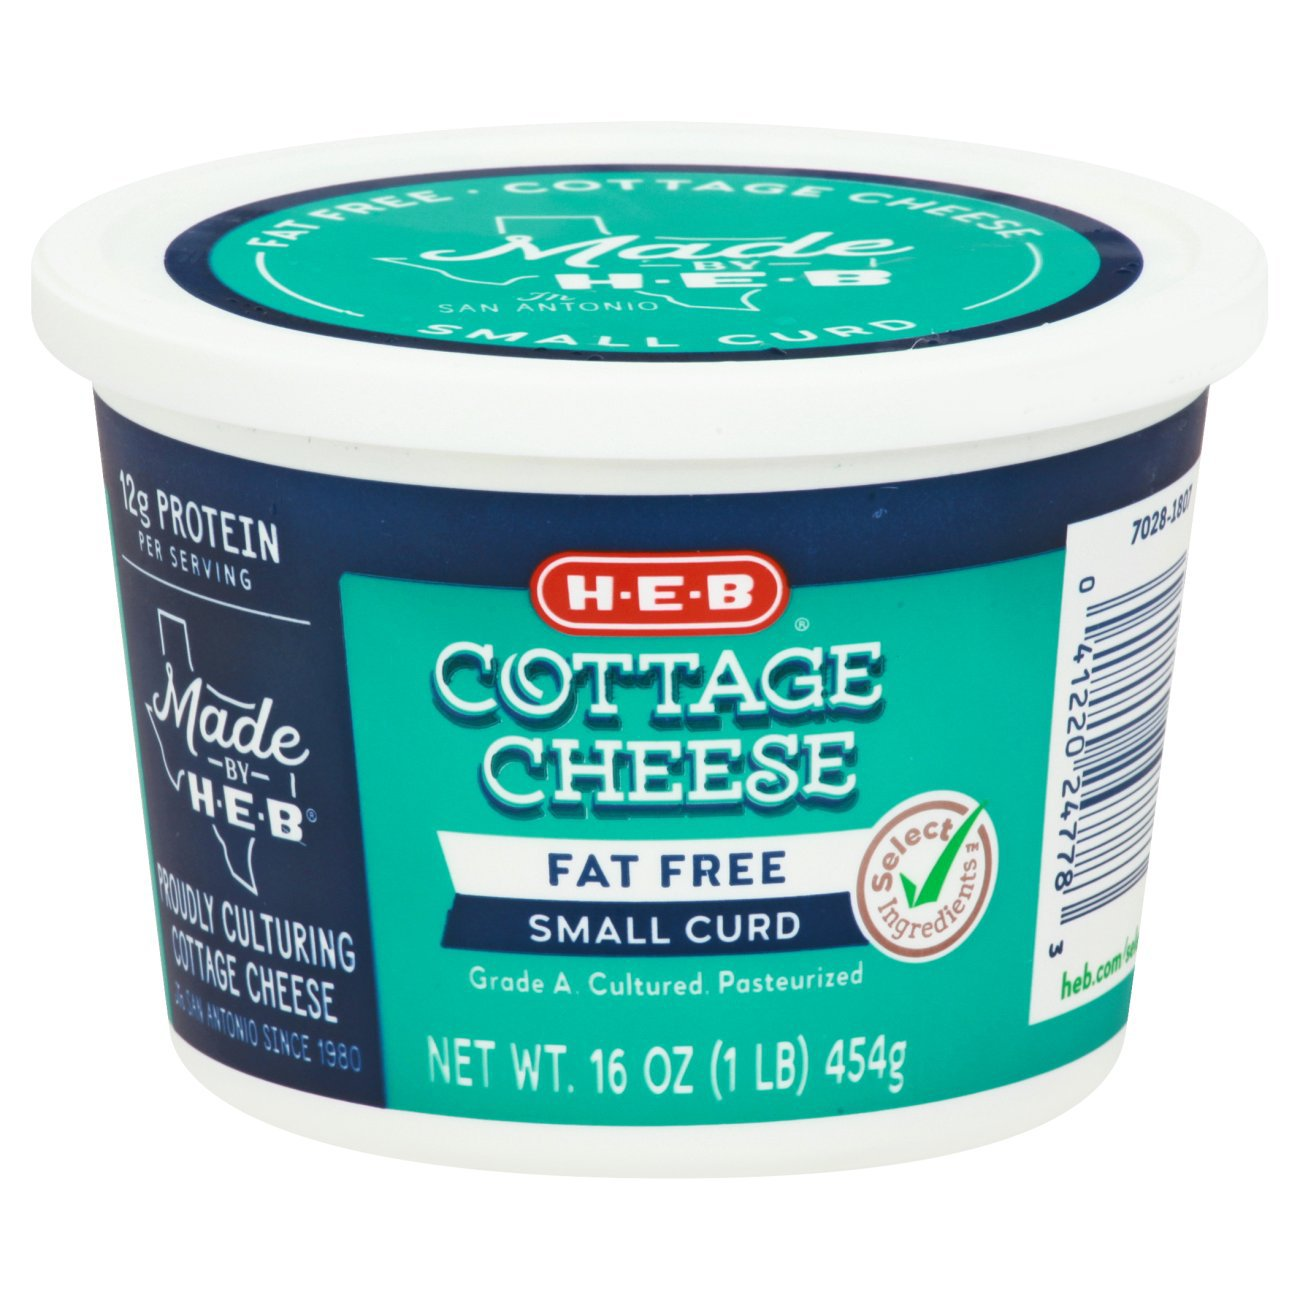 Hu2011Eu2011B Fat Free Cottage Cheese U2011 Shop Cottage Cheese At HEB